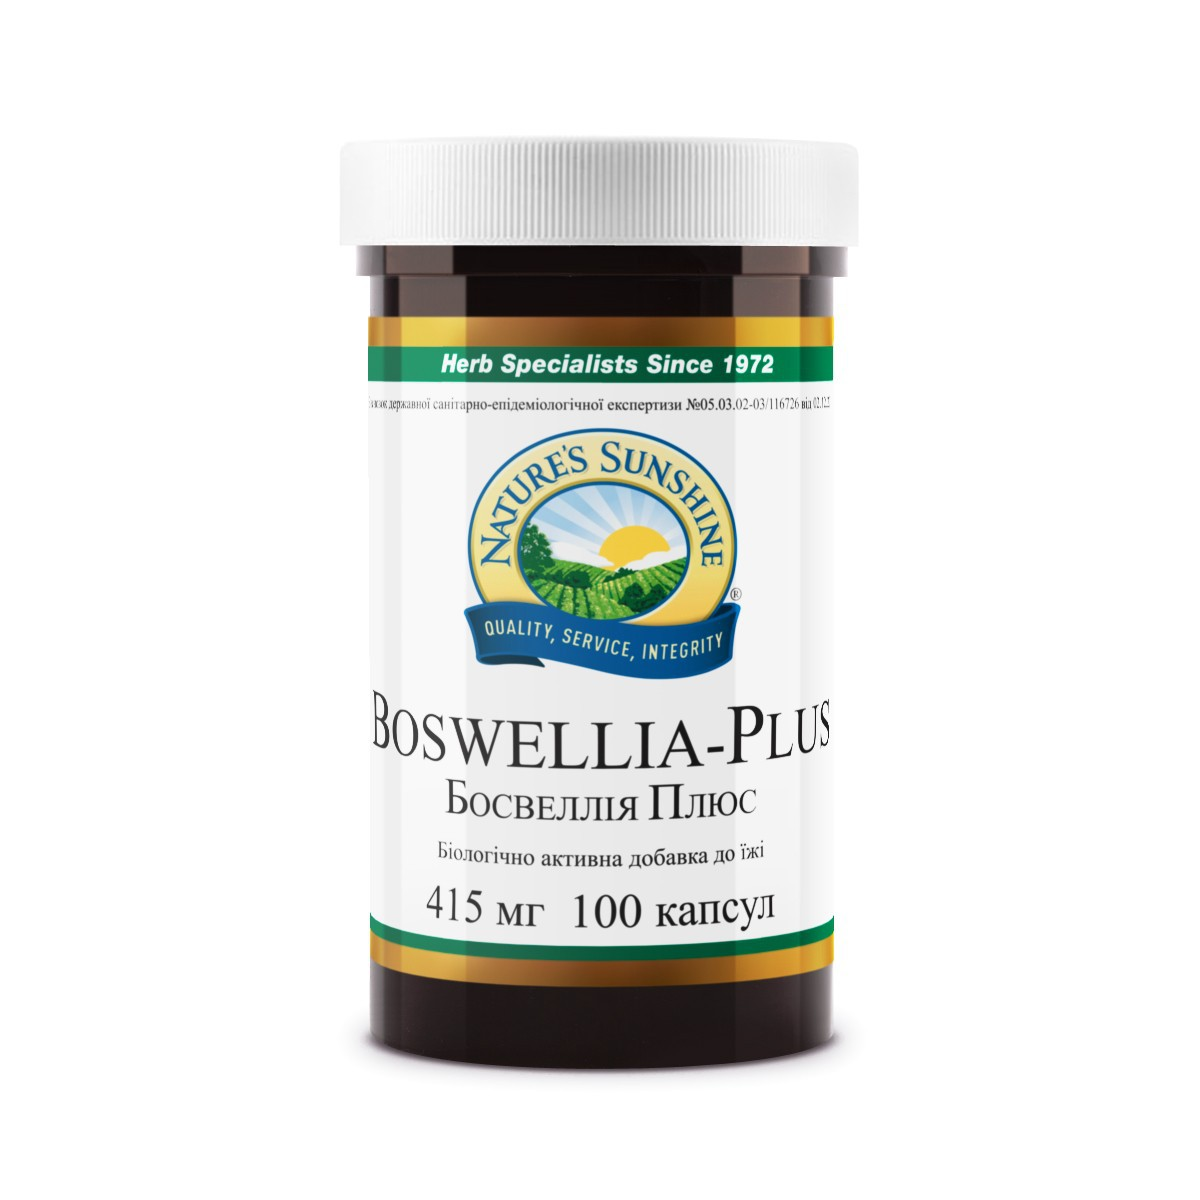 Набор 1+1: Boswellia Plus [1296] (1 шт) + Compact Powder Almond Cake [62200] (1шт) (годен до 01.2018)